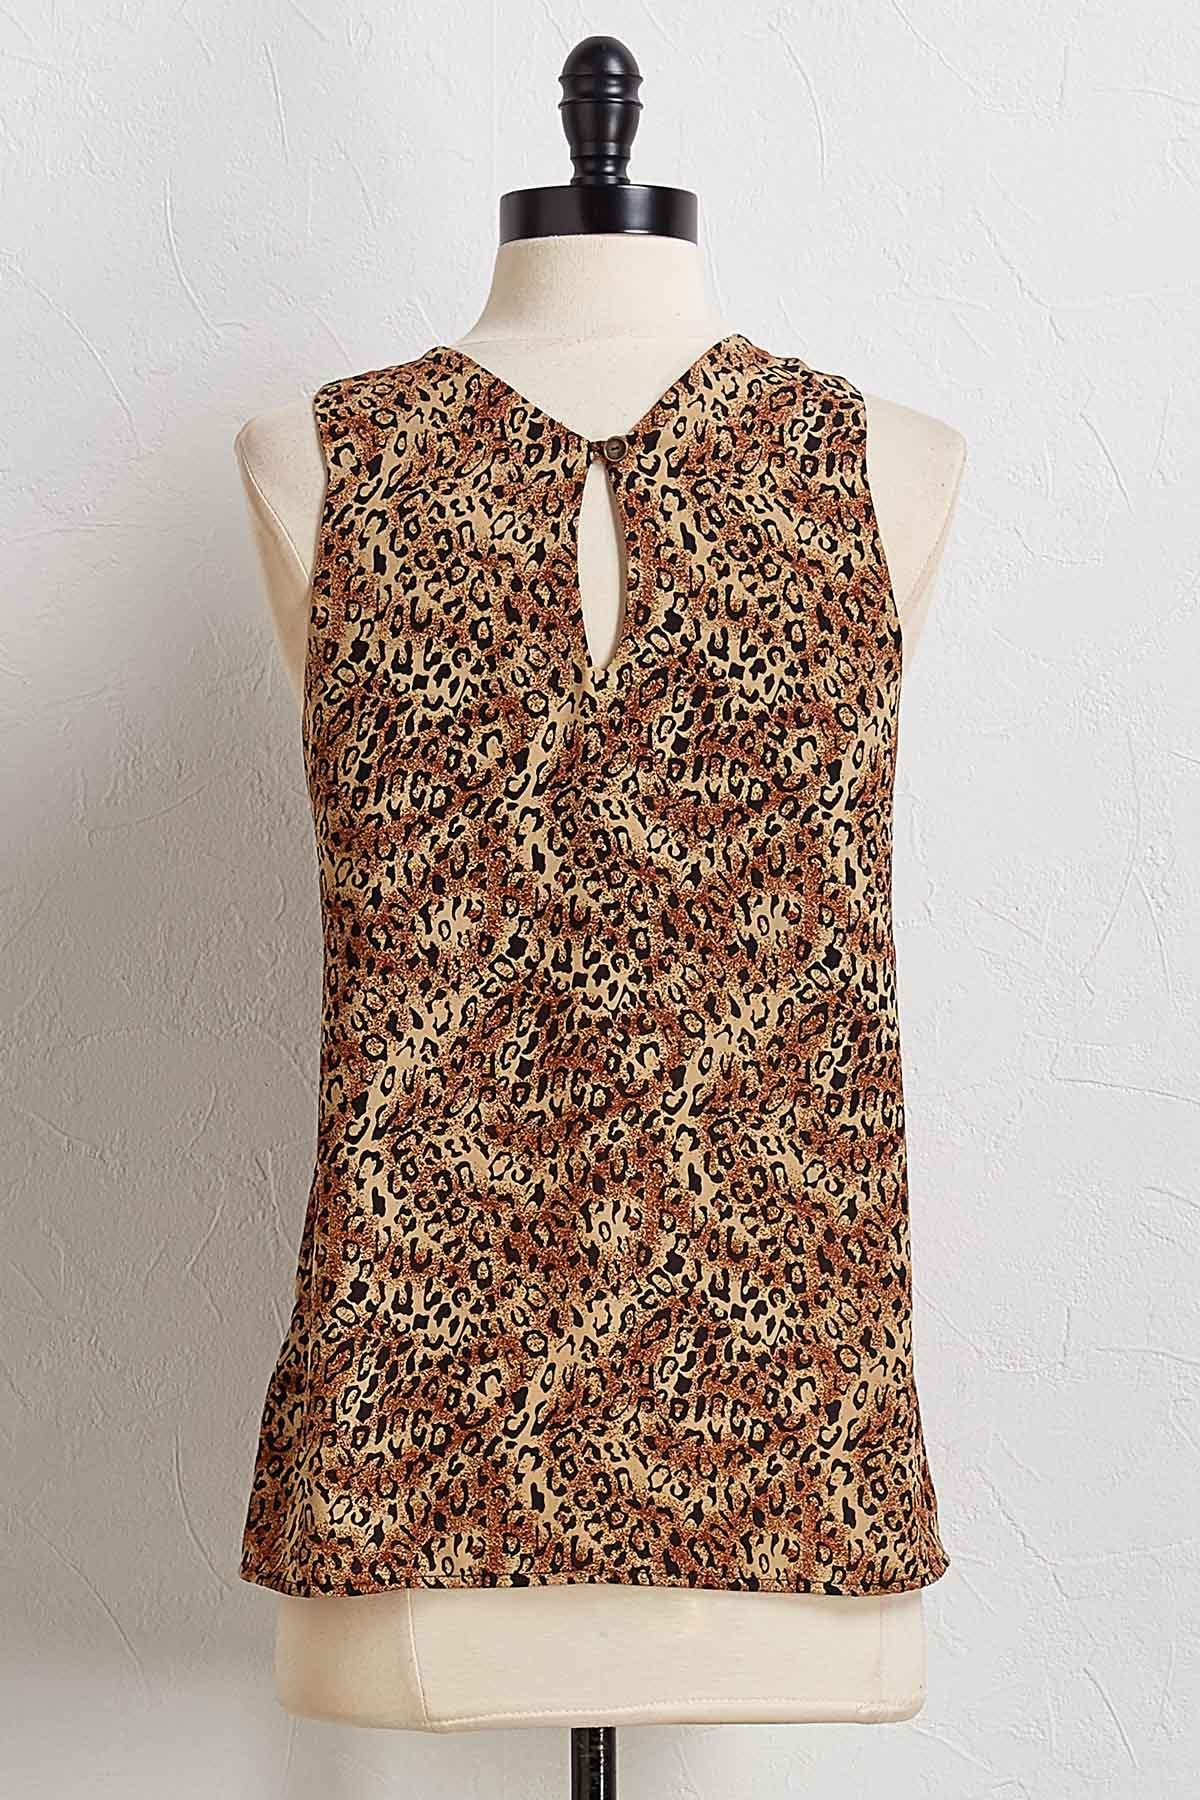 Knotted Leopard Halter Top